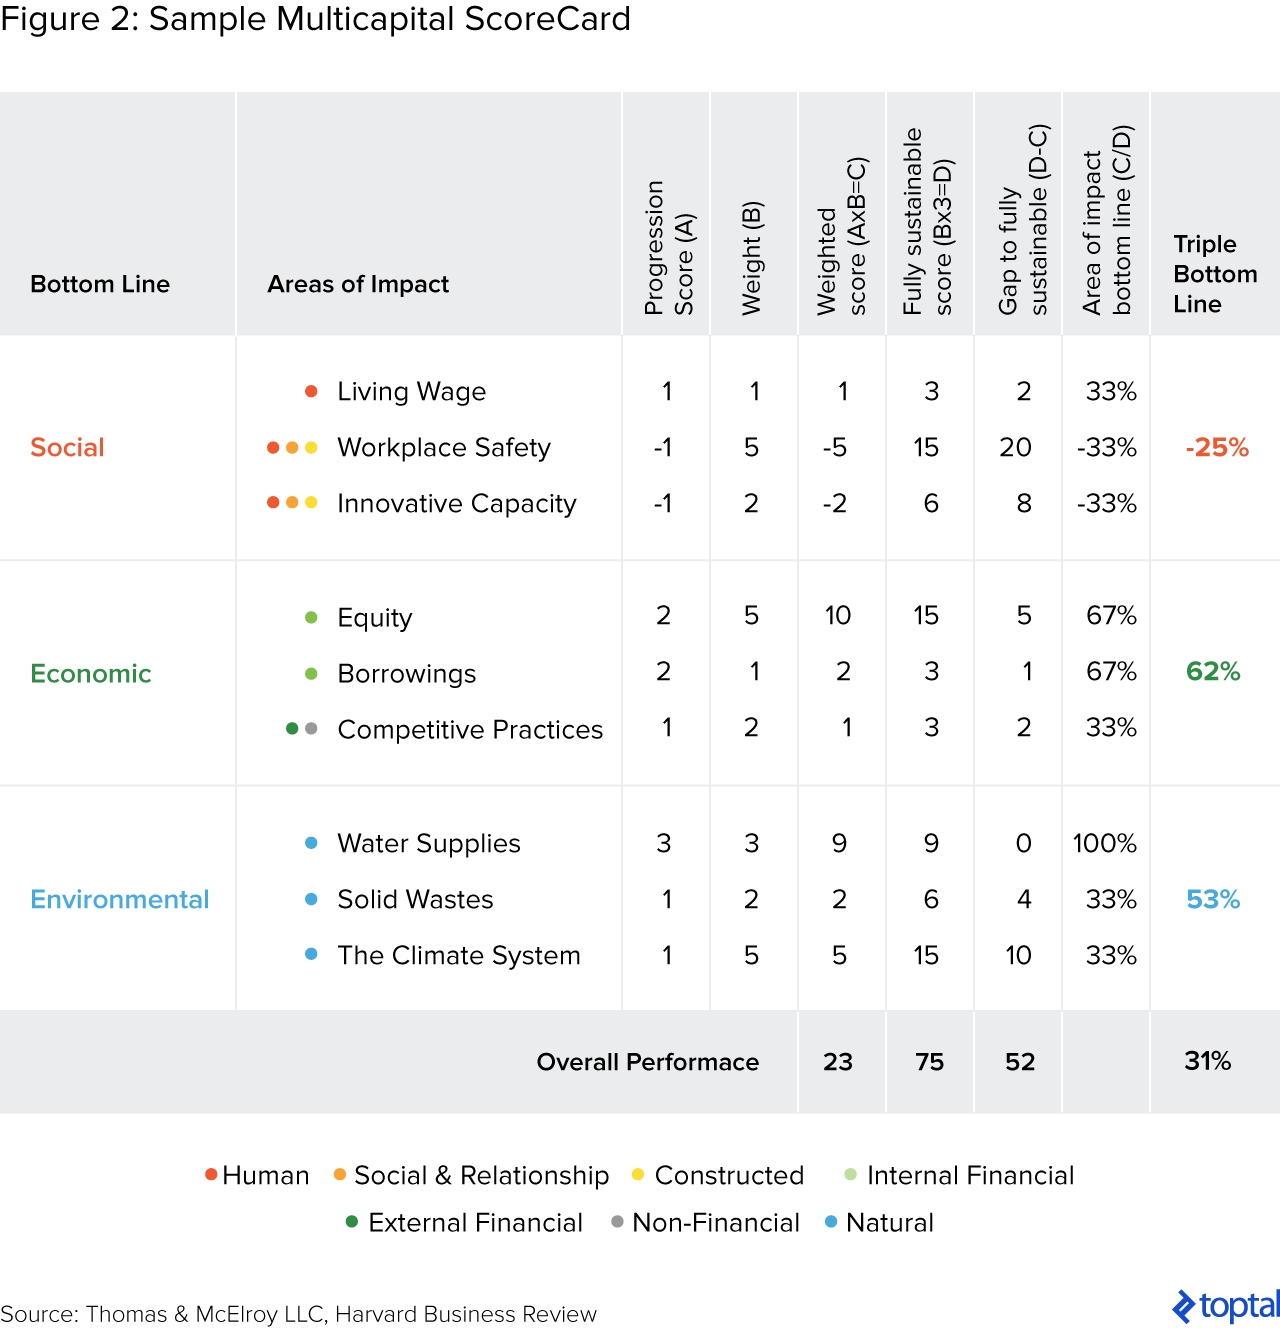 Figure 2: Sample Multicapital ScoreCard